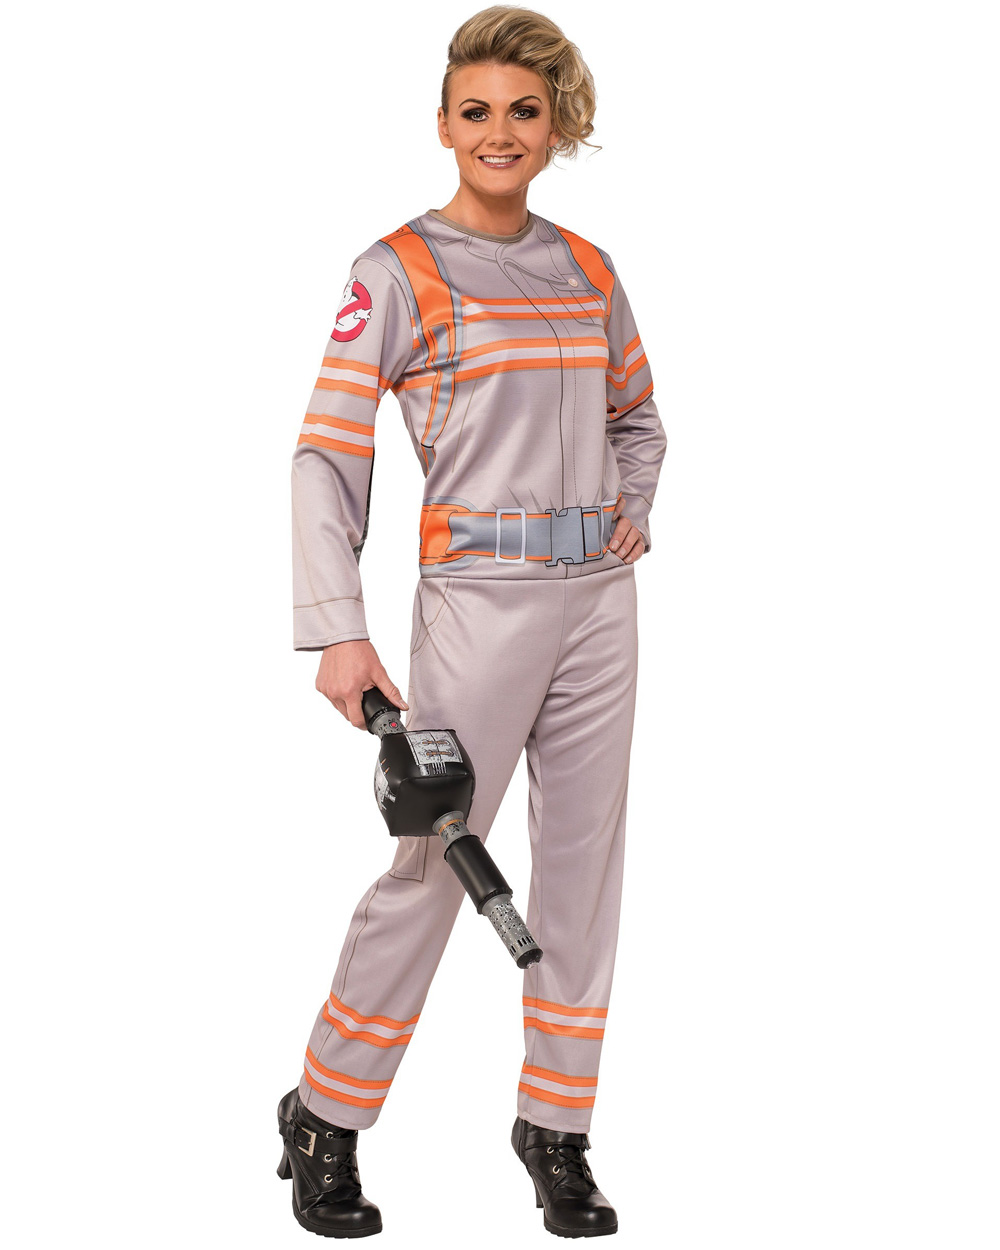 cl964 womens movie theme ghostbusters jumpsuit fancy dress